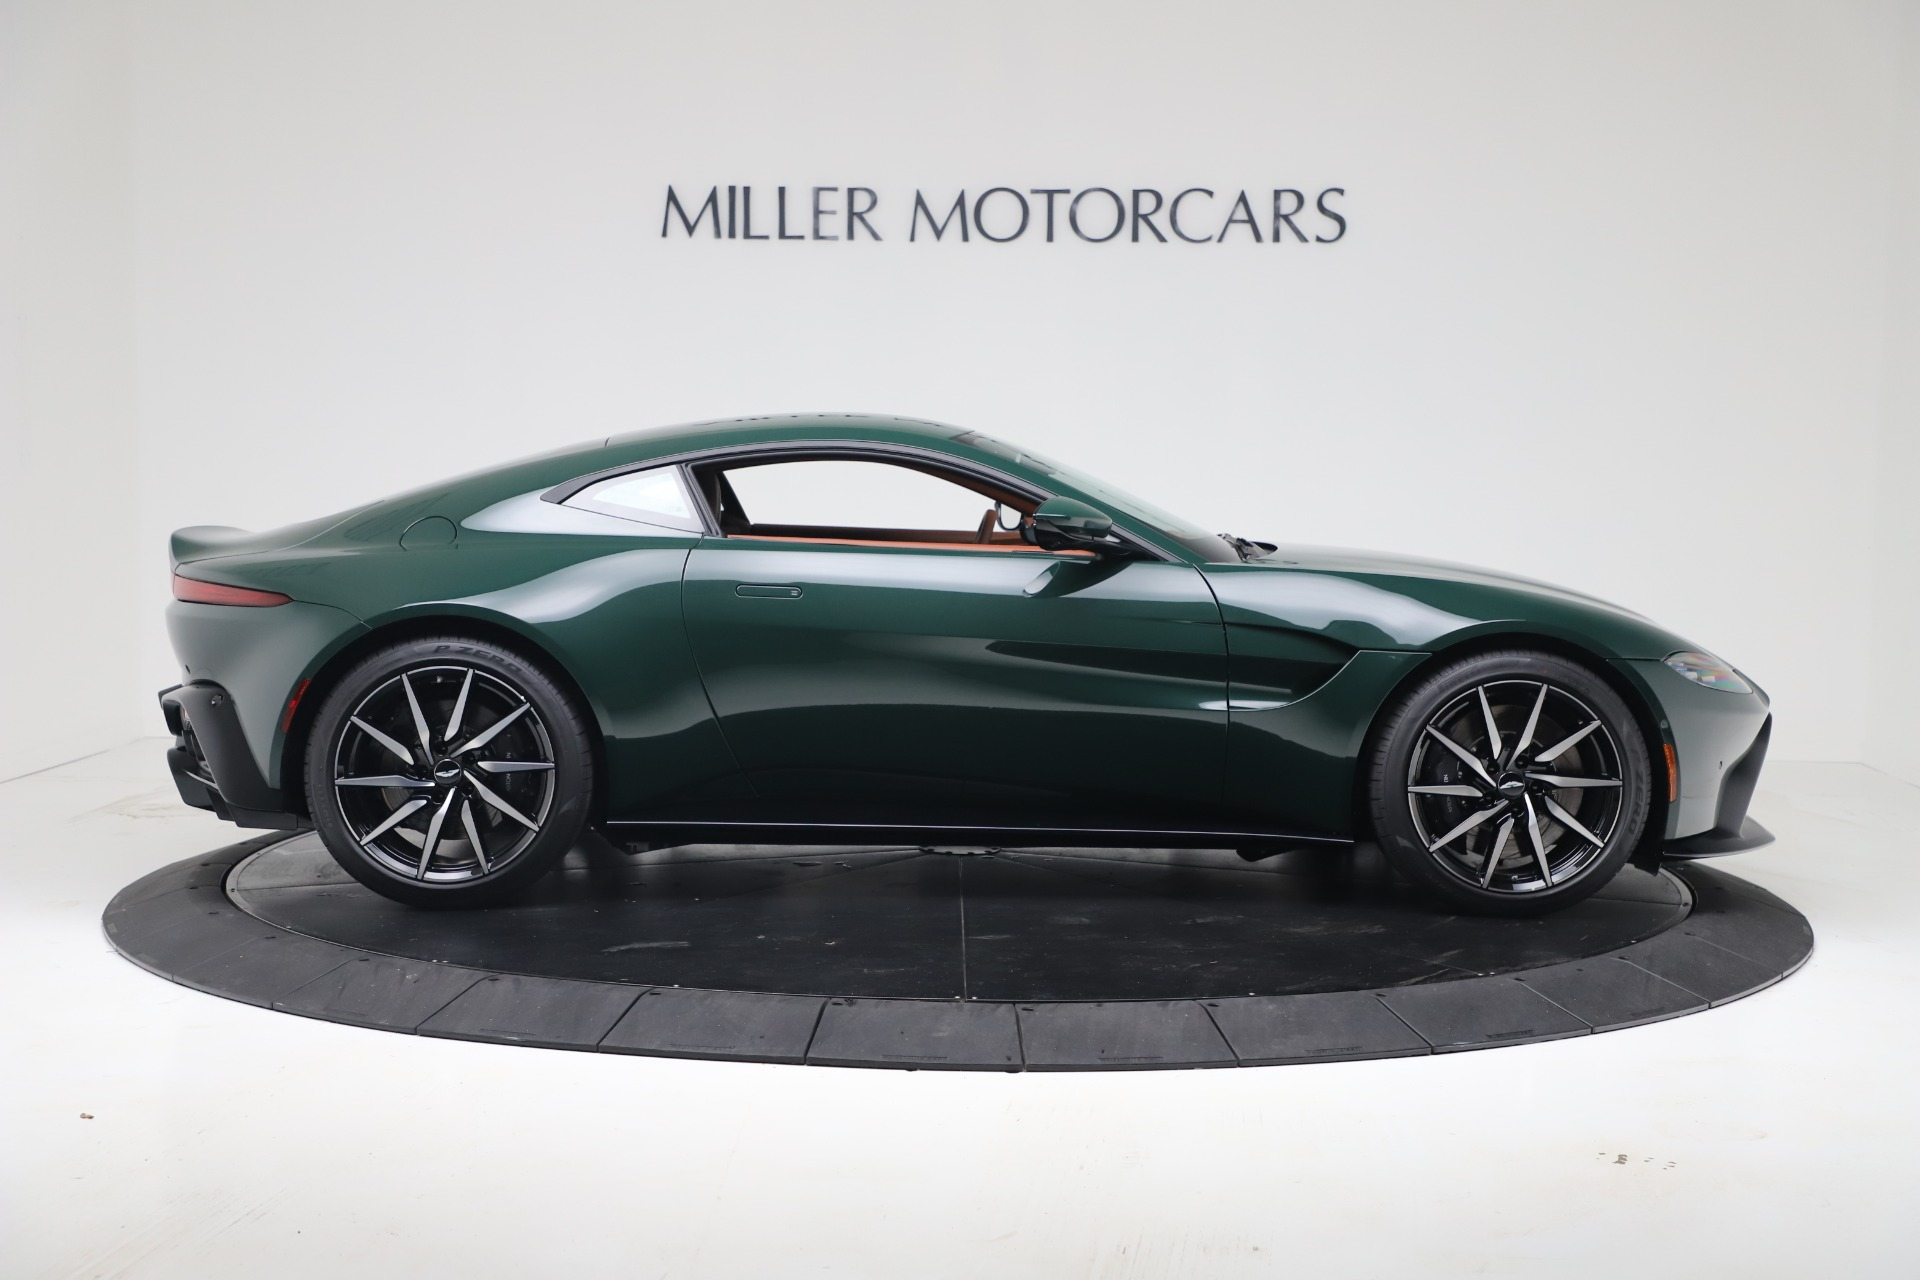 New 2020 Aston Martin Vantage V8 For Sale In Westport, CT 3483_p6